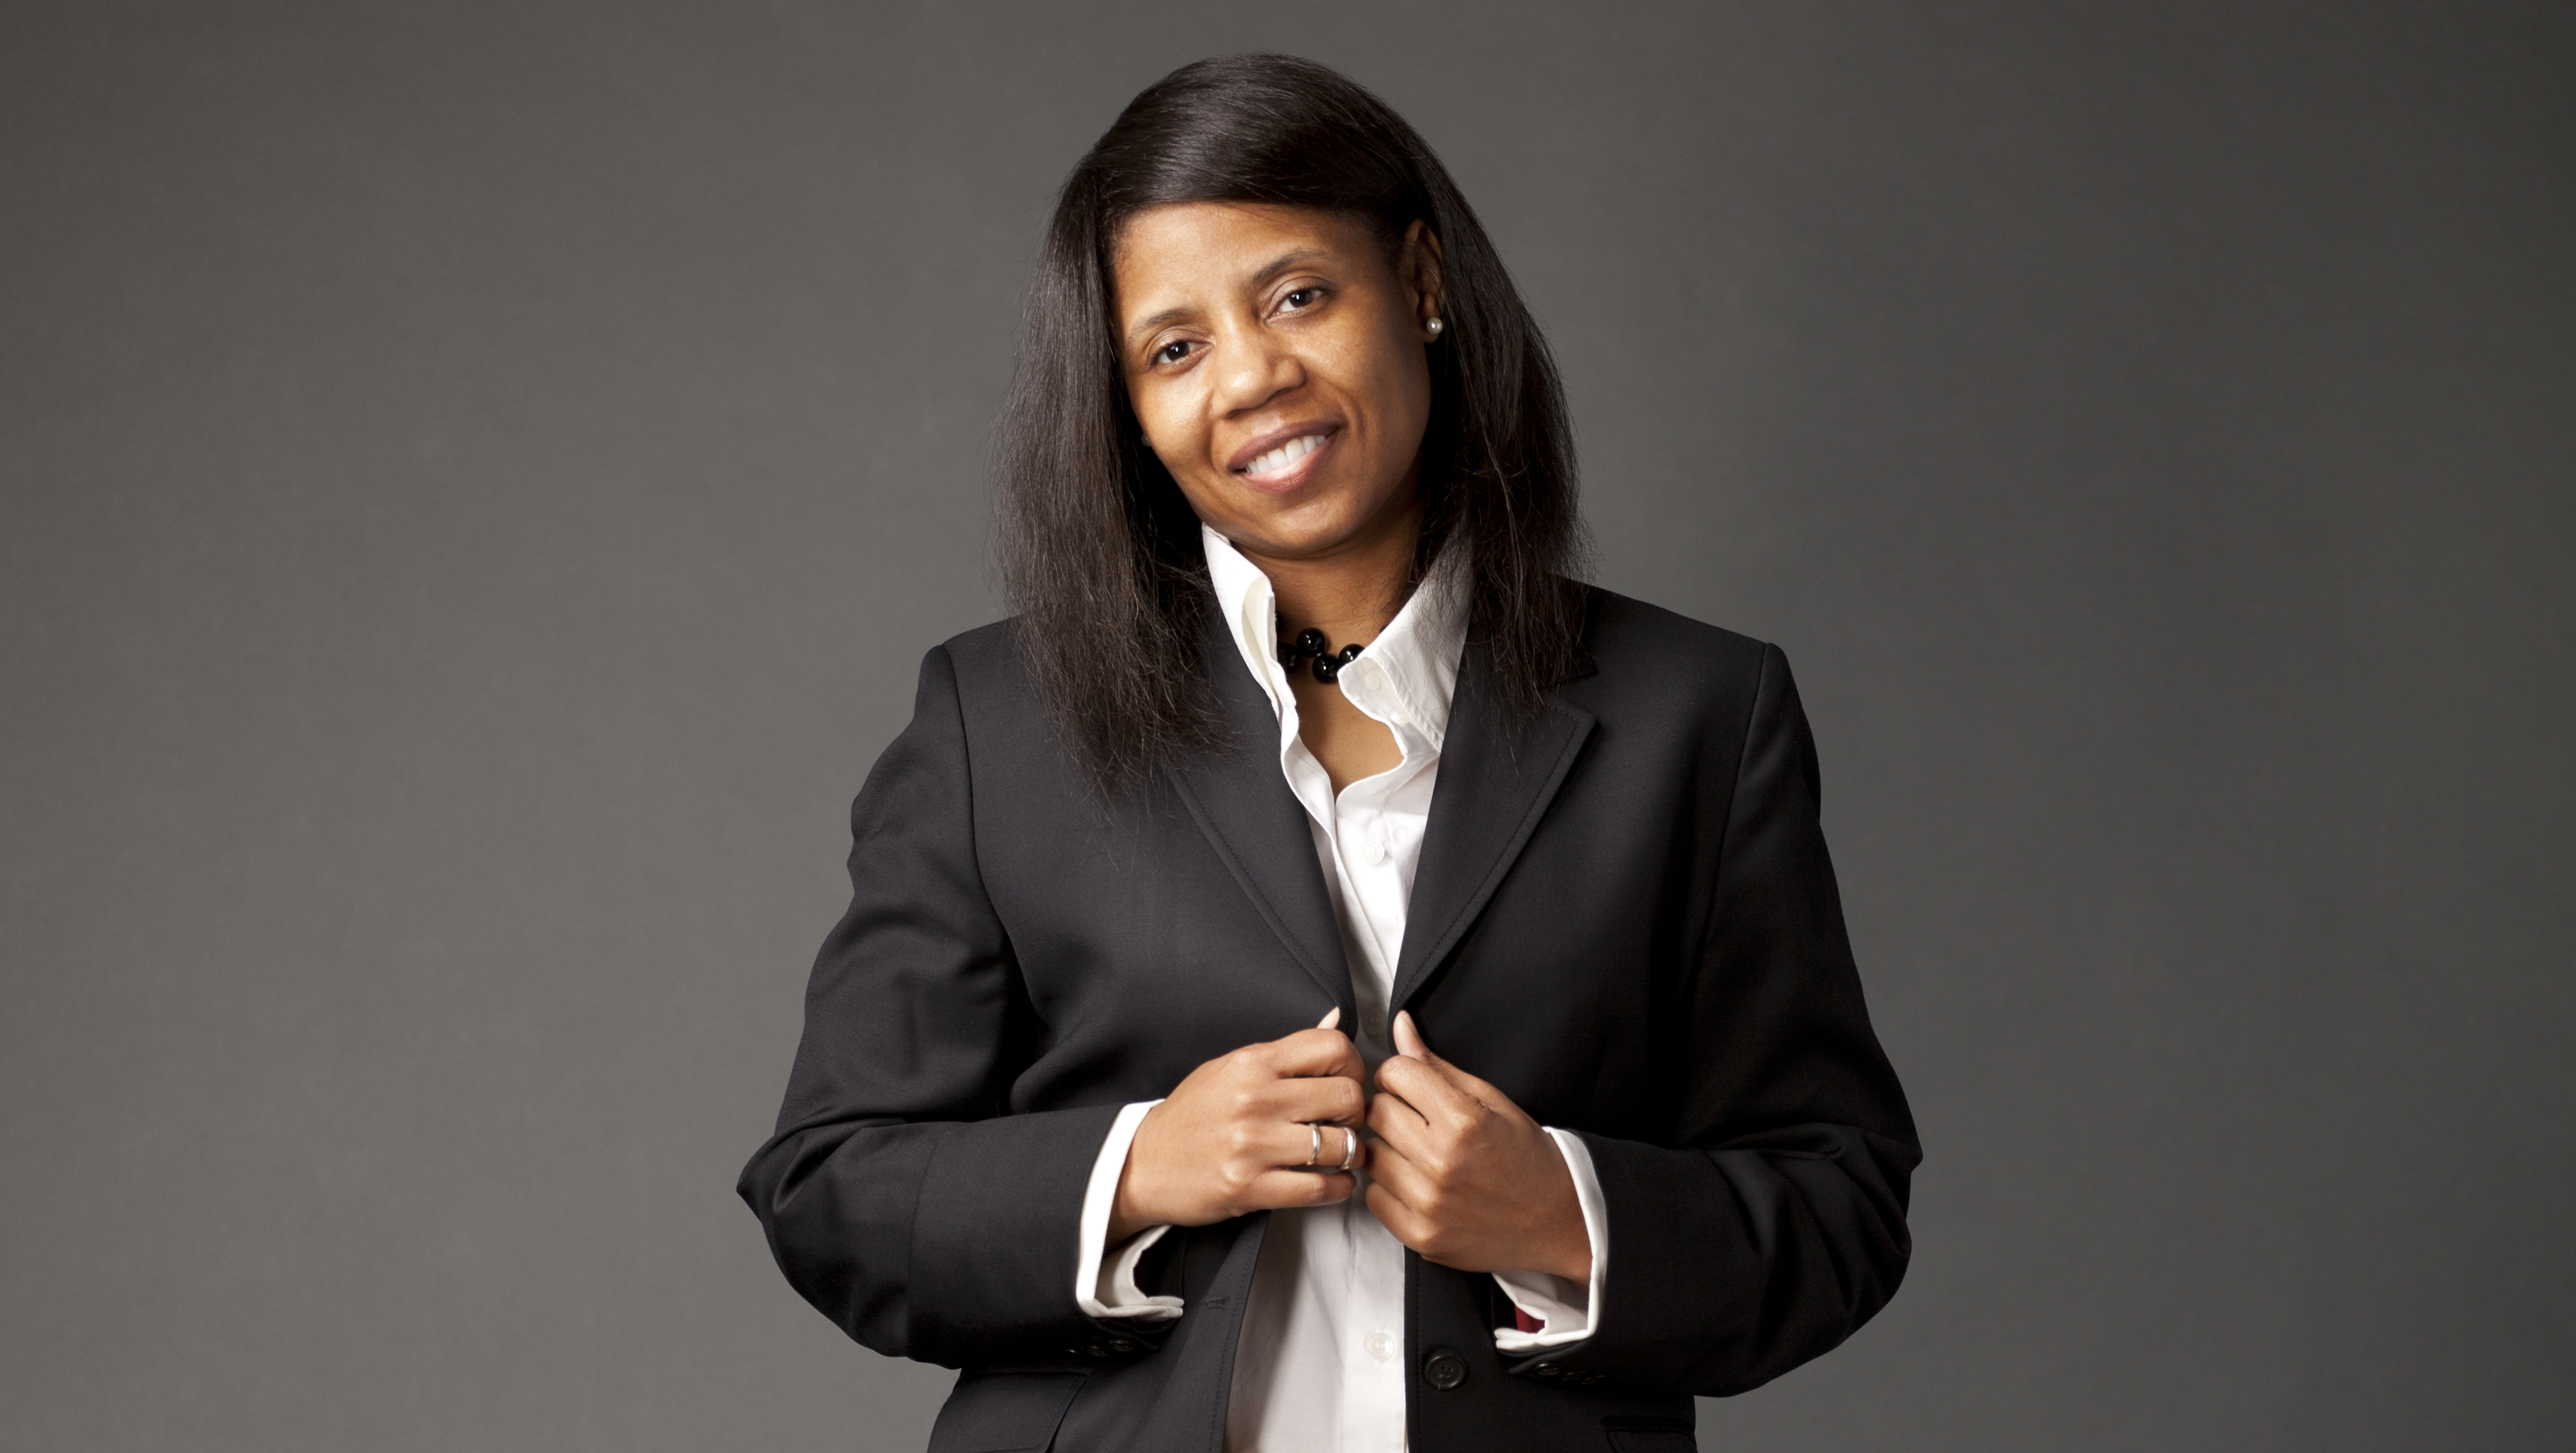 @fennicasino's cover photo for 'From Tuskegee to Silicon Valley, selfiepay's CEO Sharron Battle is an engineering powerhouse'